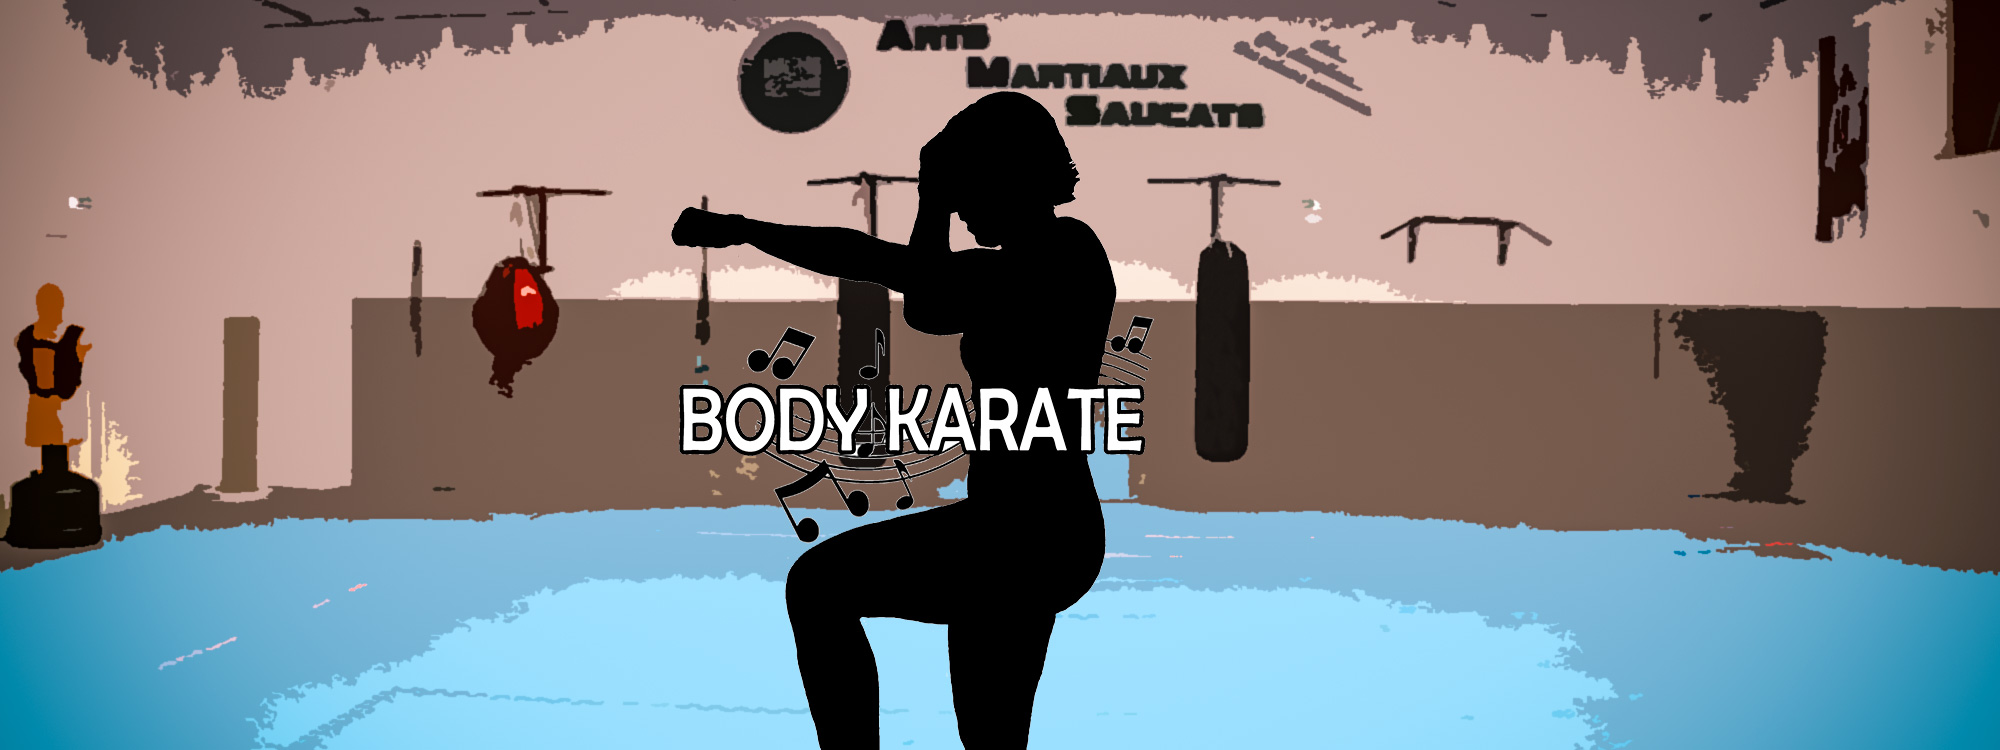 arts-martiaux-saucats-body-karate